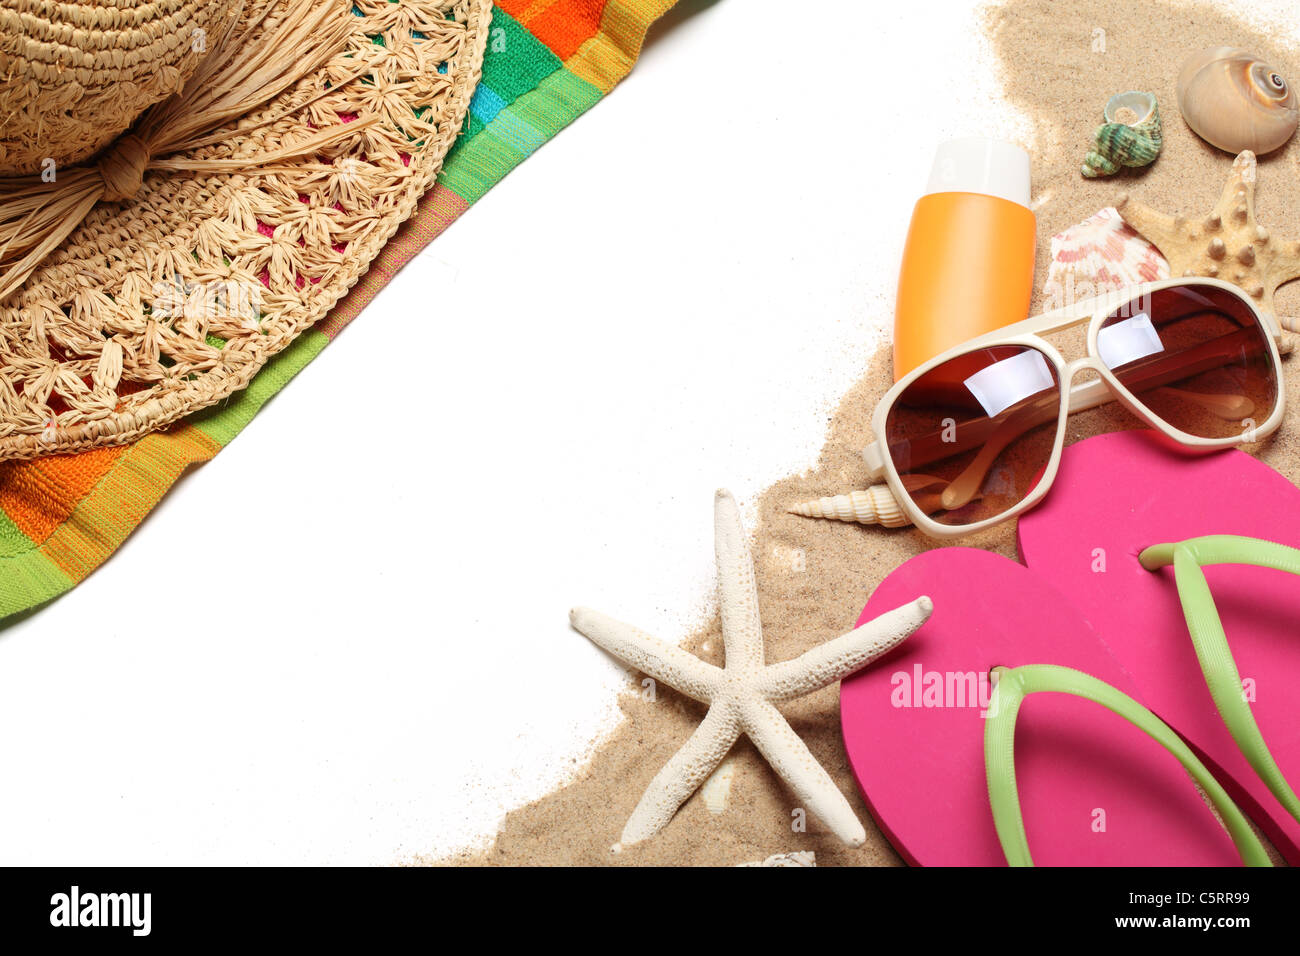 Beach items on white background.Copy space for your text. - Stock Image